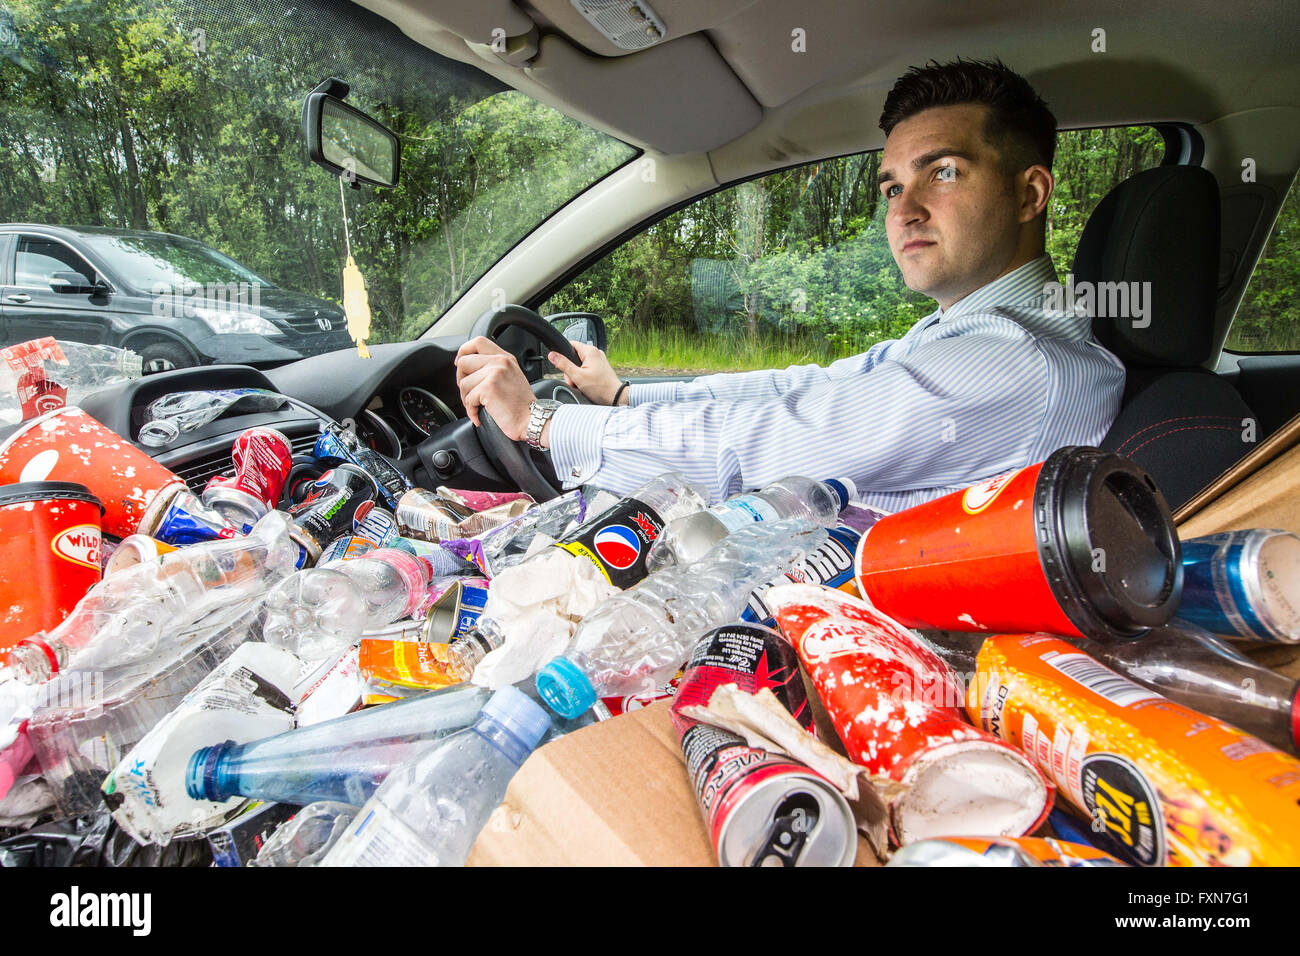 Car full of litter to show how much litter is thrown away each year on our roadsides - Stock Image